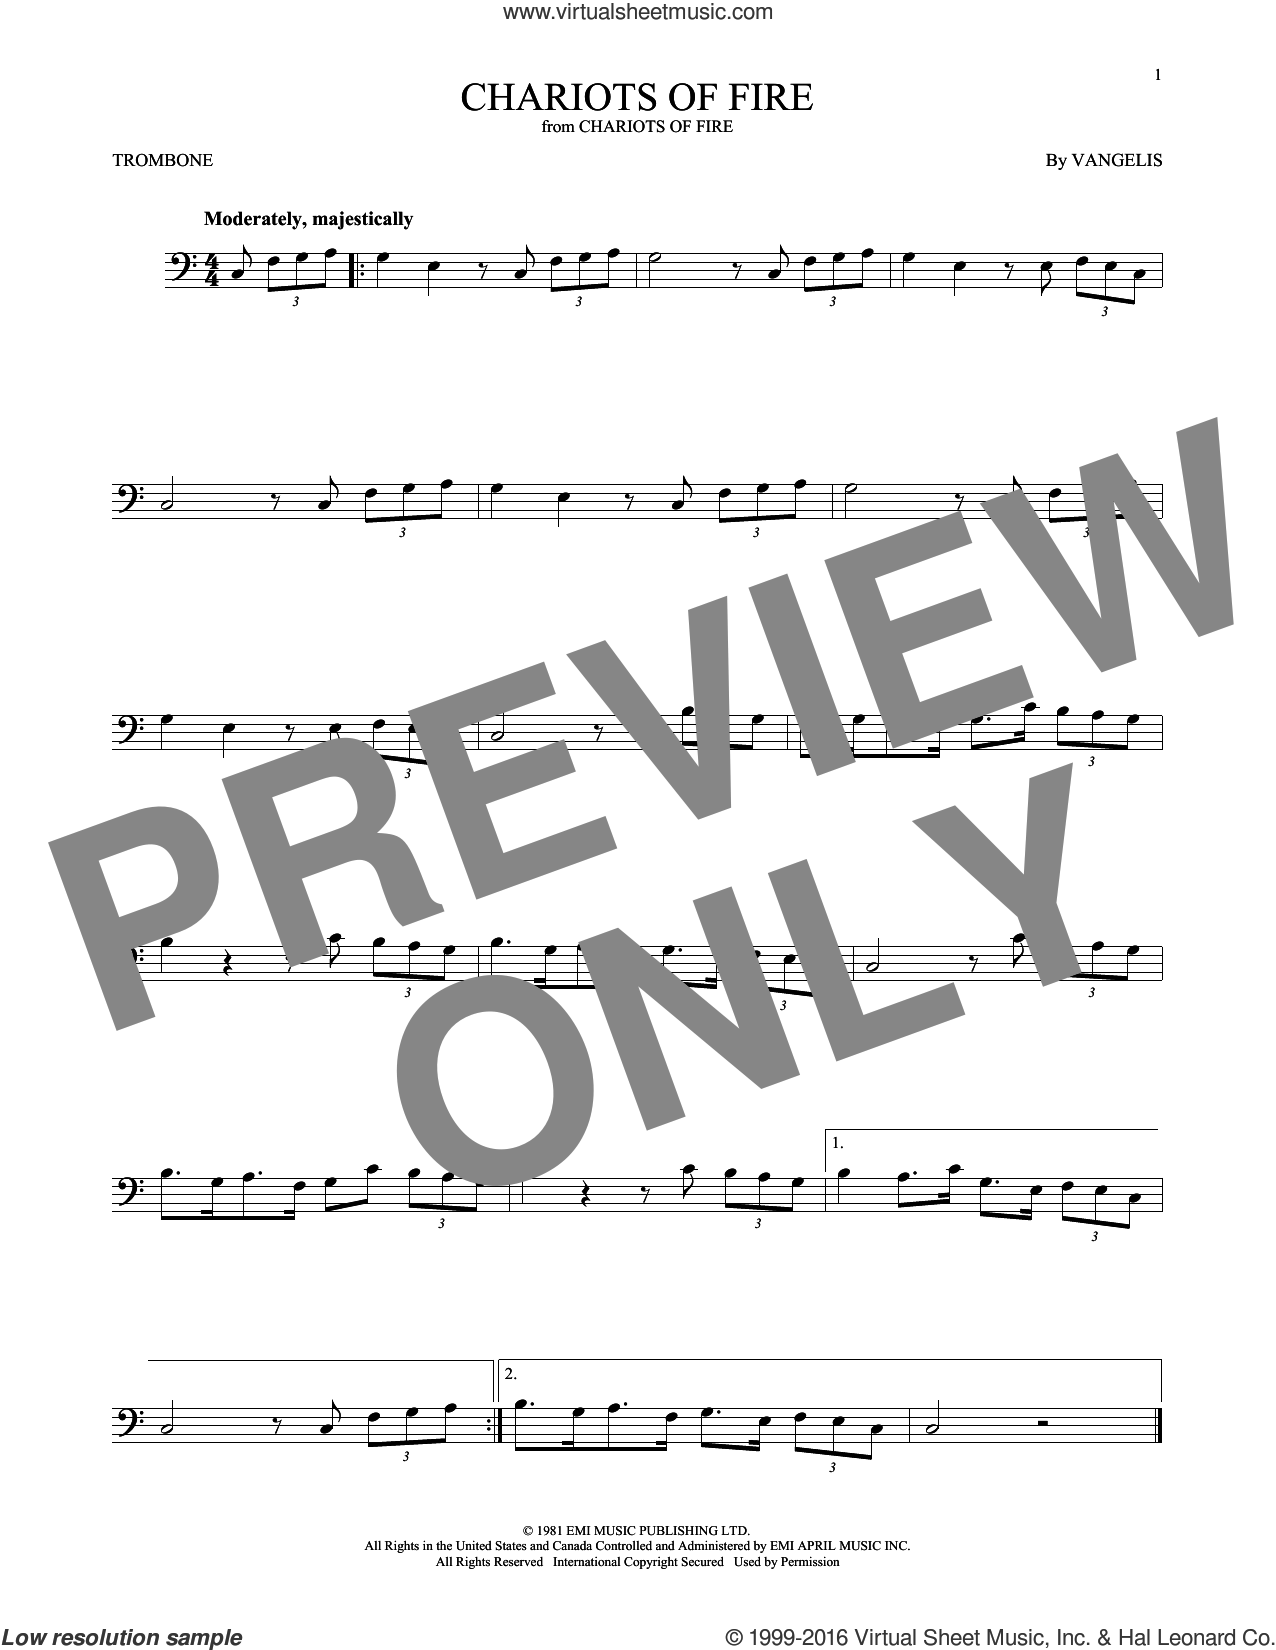 Chariots Of Fire sheet music for trombone solo by Vangelis, intermediate skill level